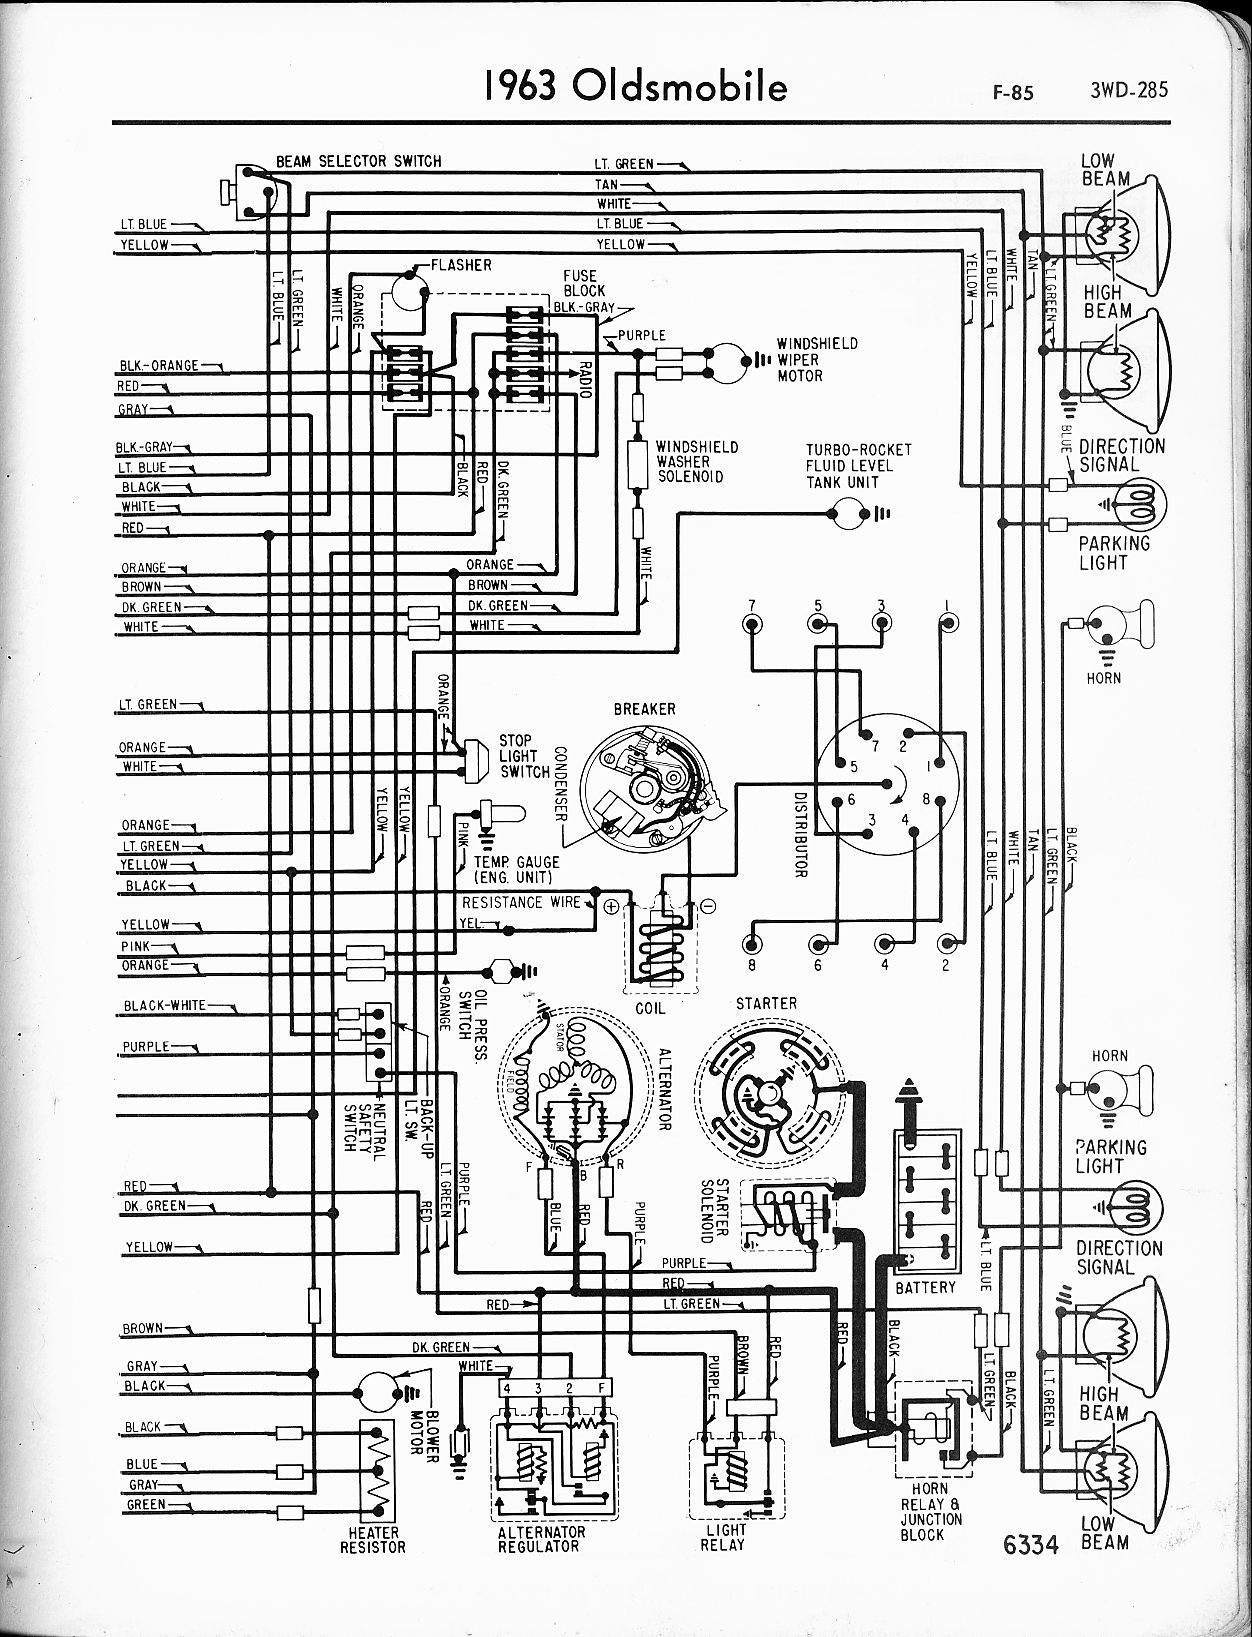 MWire5765 285 oldsmobile wiring diagrams the old car manual project  at fashall.co